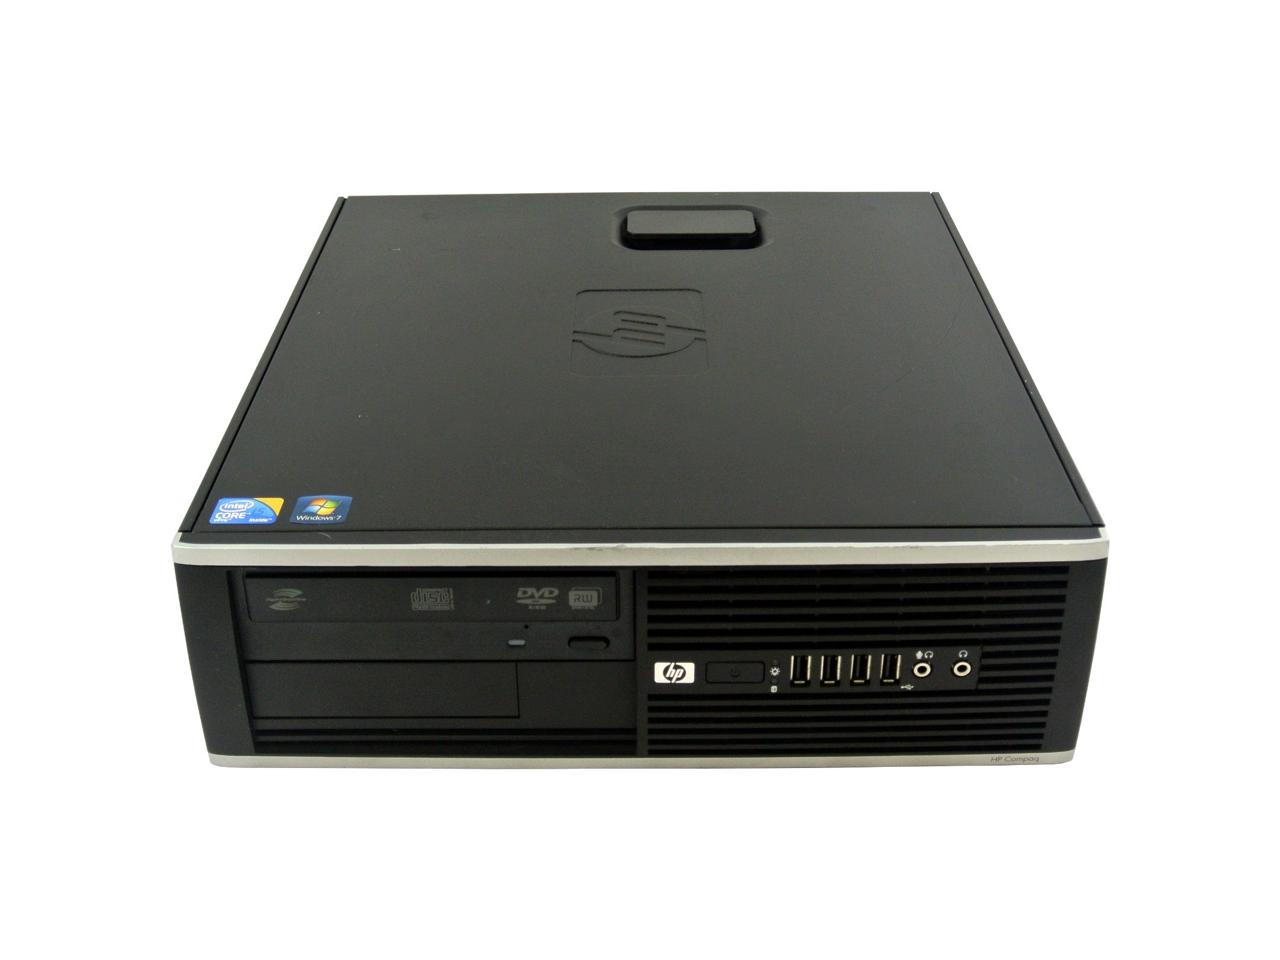 Hp compaq 8100 elite / Mad greek lawrence ks